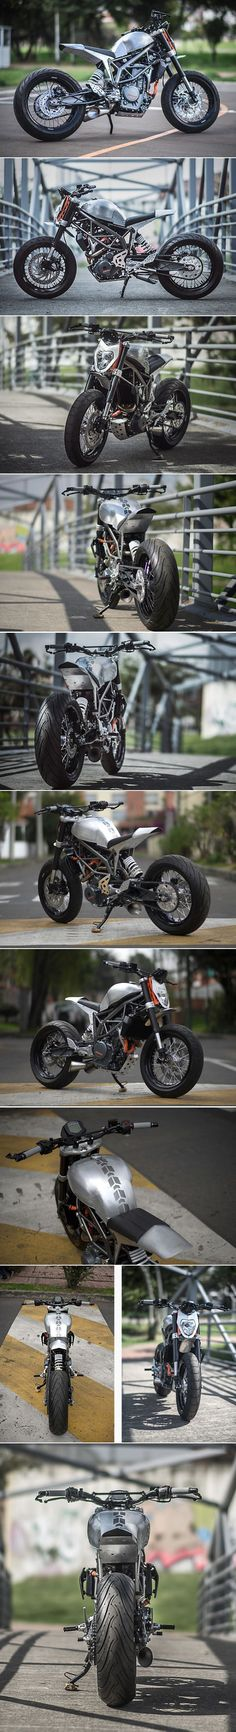 71 Best transport images in 2017 | Vehicles, Motorcycles, Custom bikes